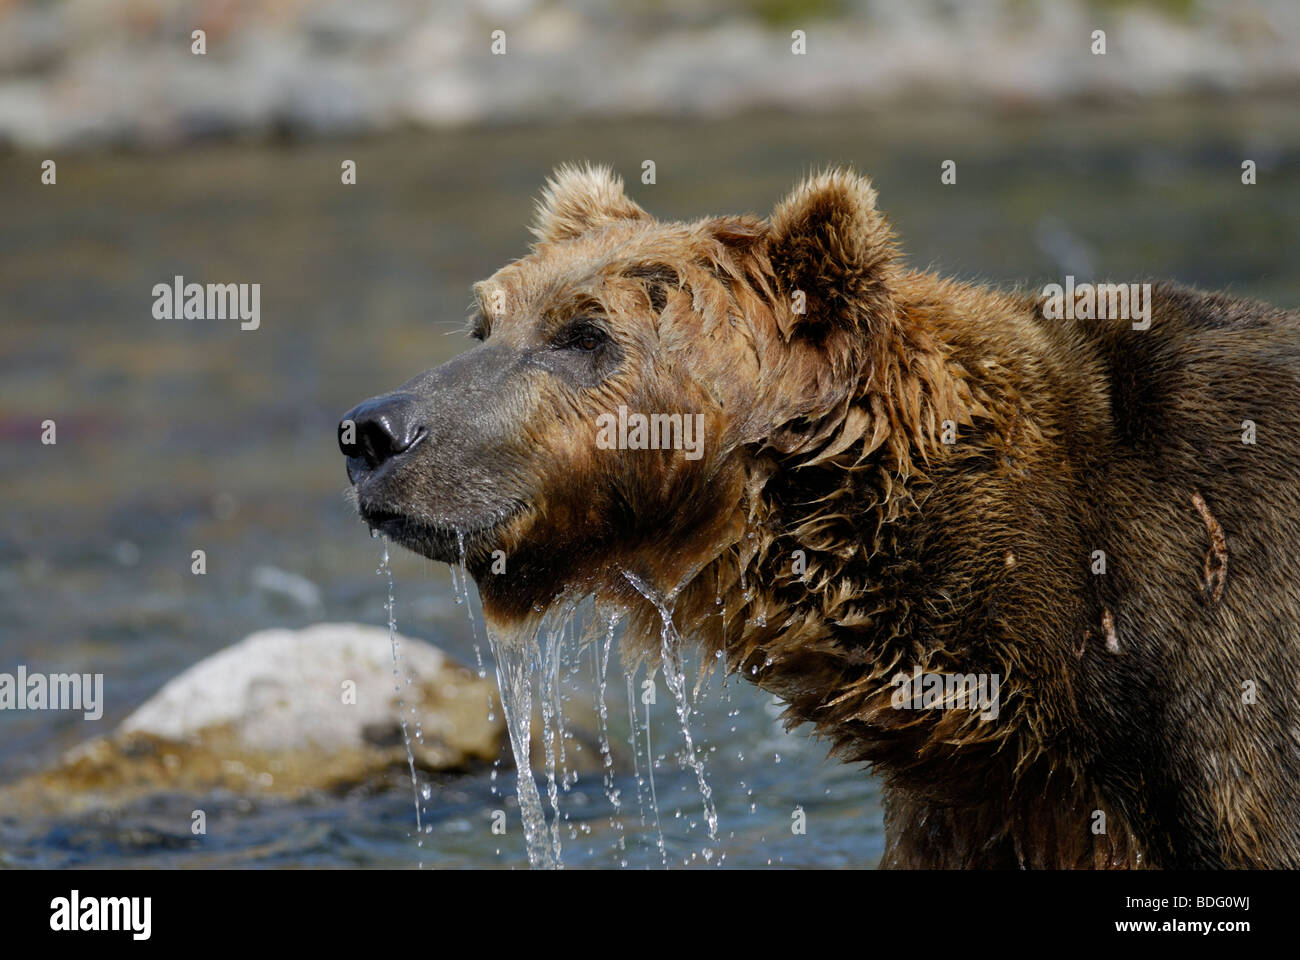 Brown bear or grizzly bear, Ursus arctos horribilis, after looking in water for salmon. Second in sequence with - Stock Image